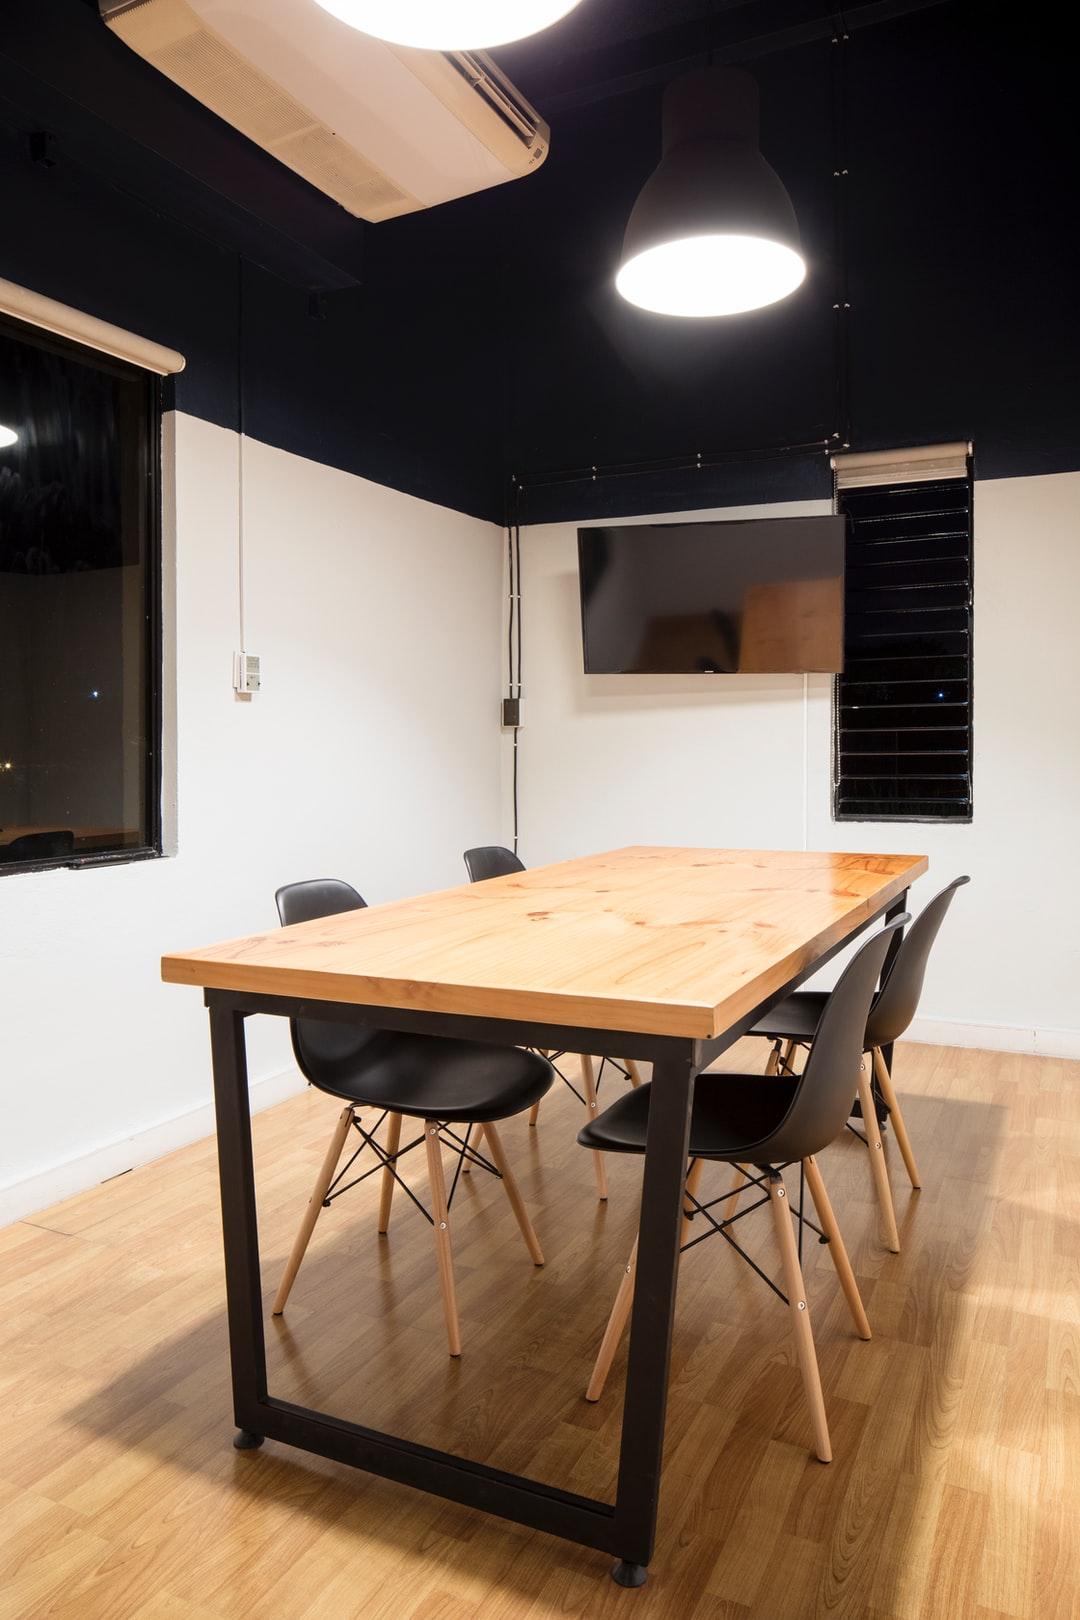 Wooden table in a meeting room and TV